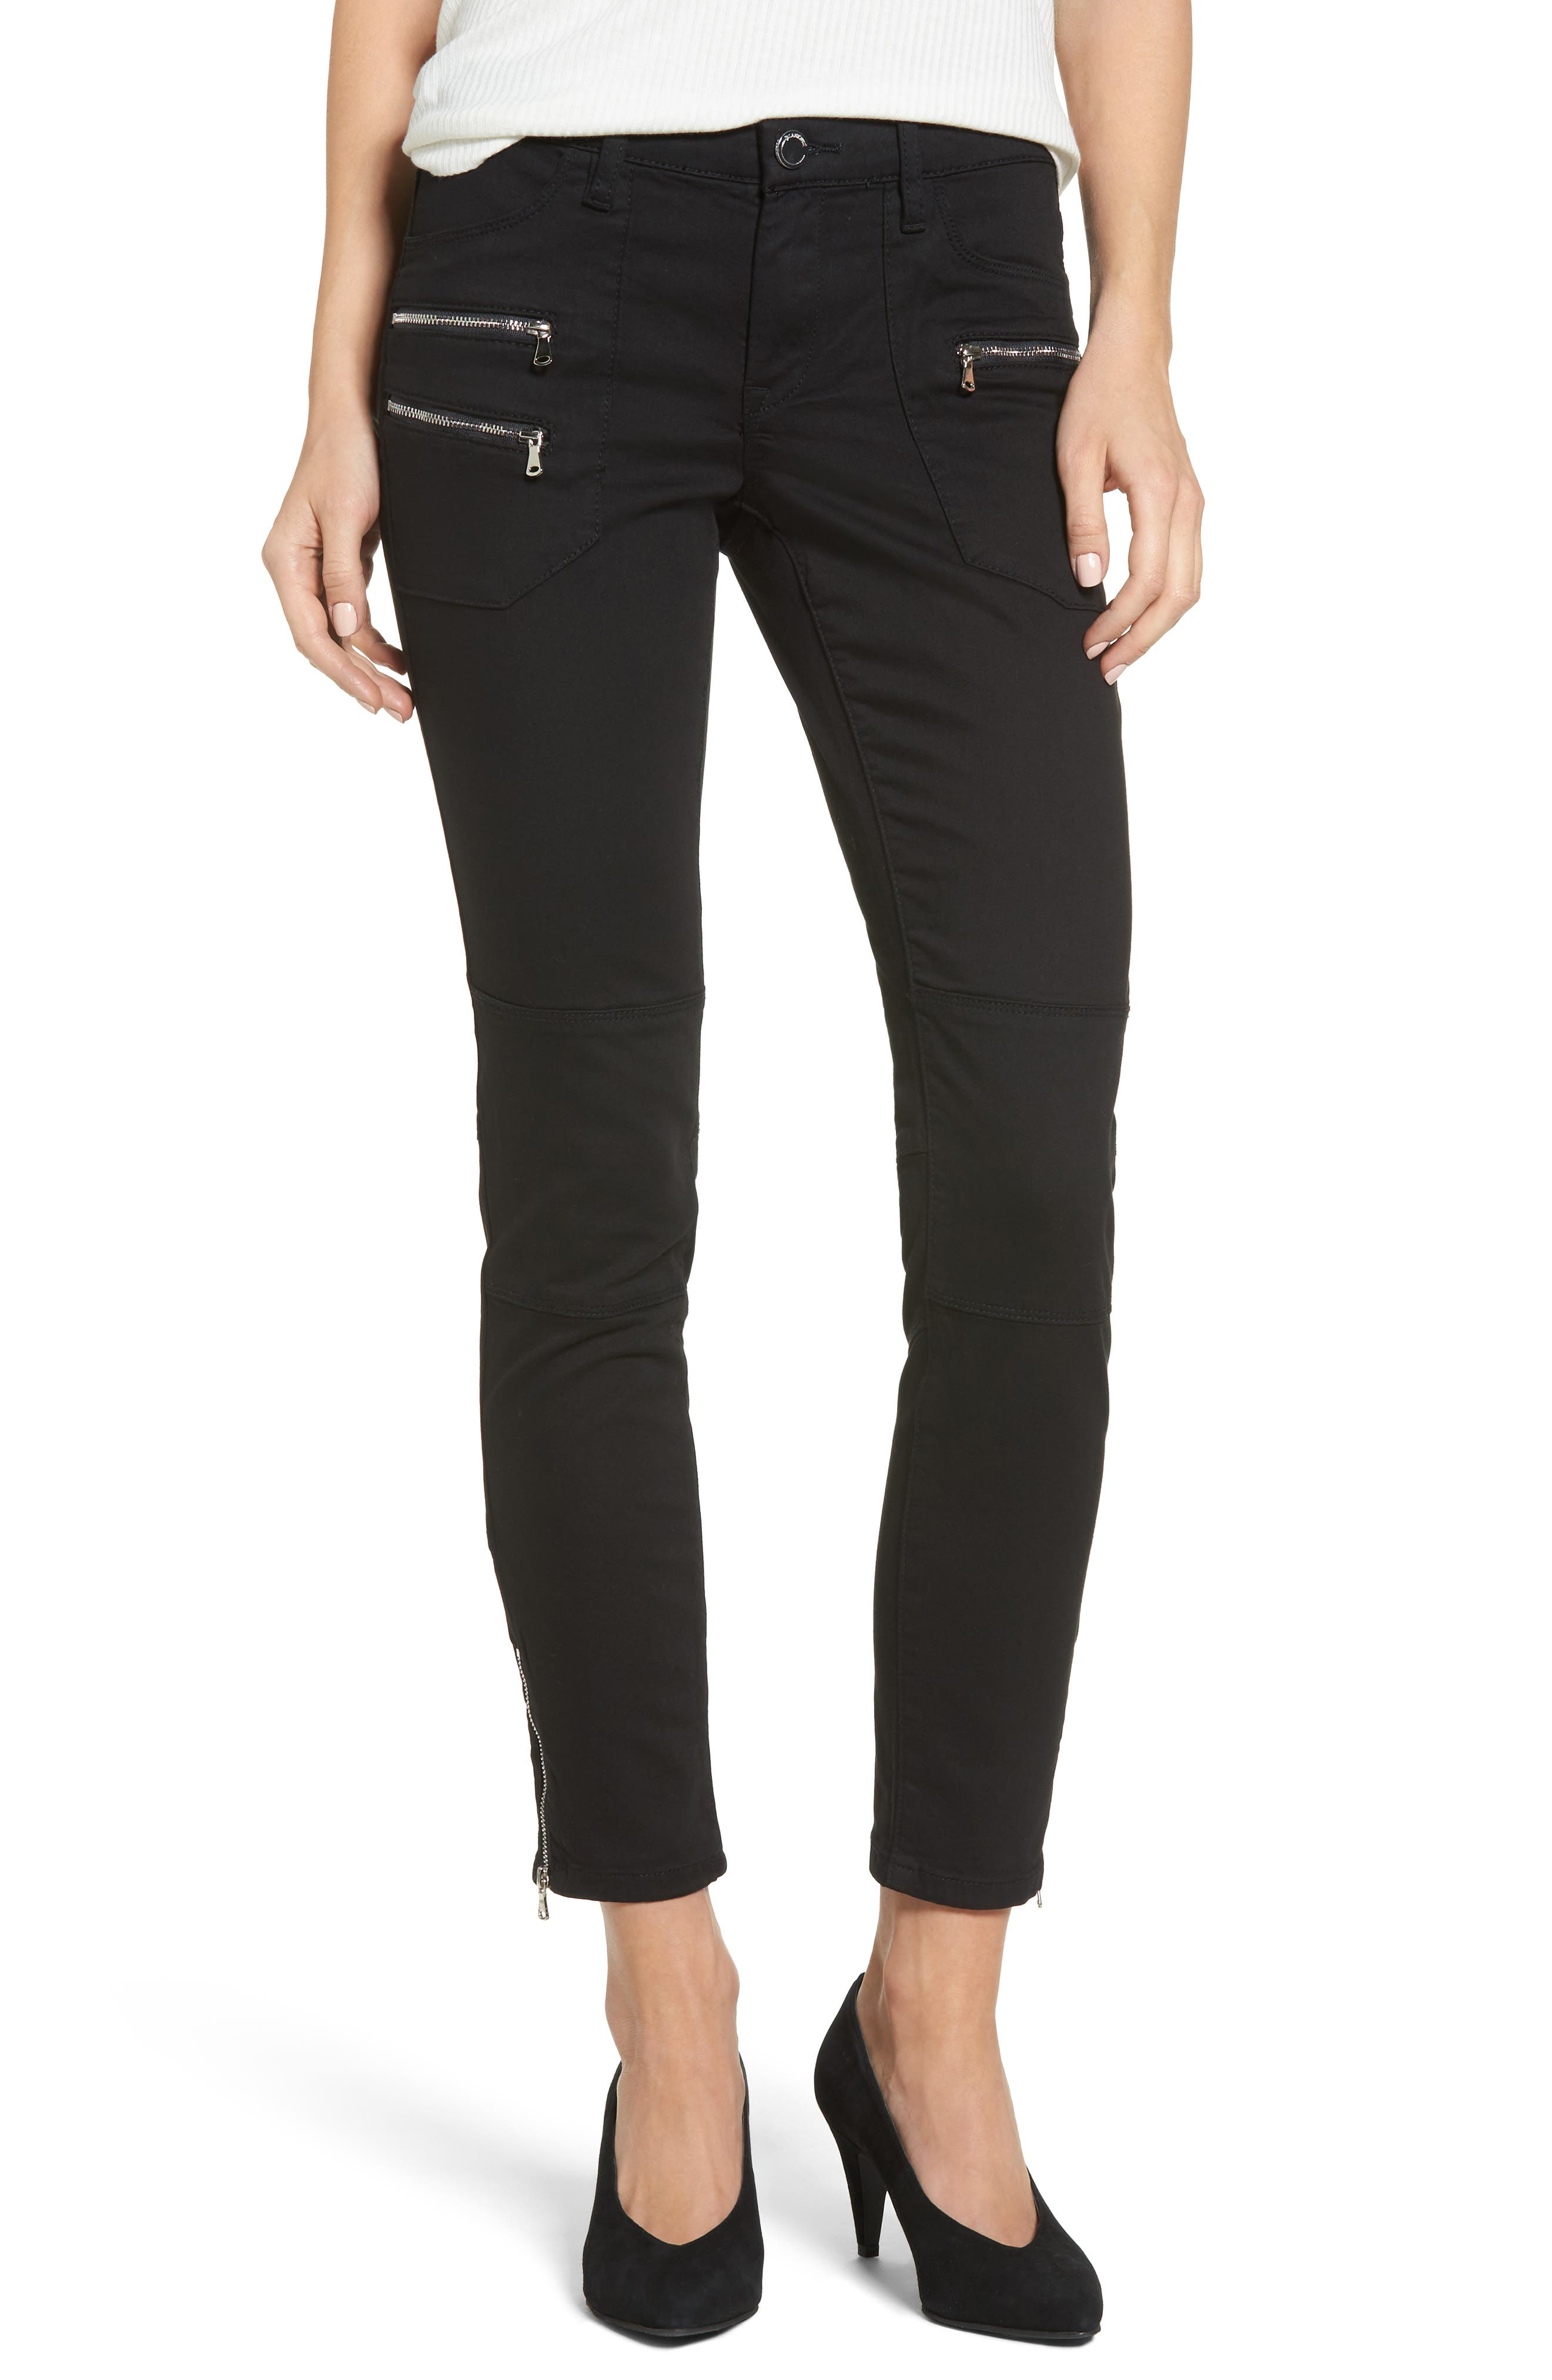 Private Party Skinny Jeans,                             Main thumbnail 1, color,                             001